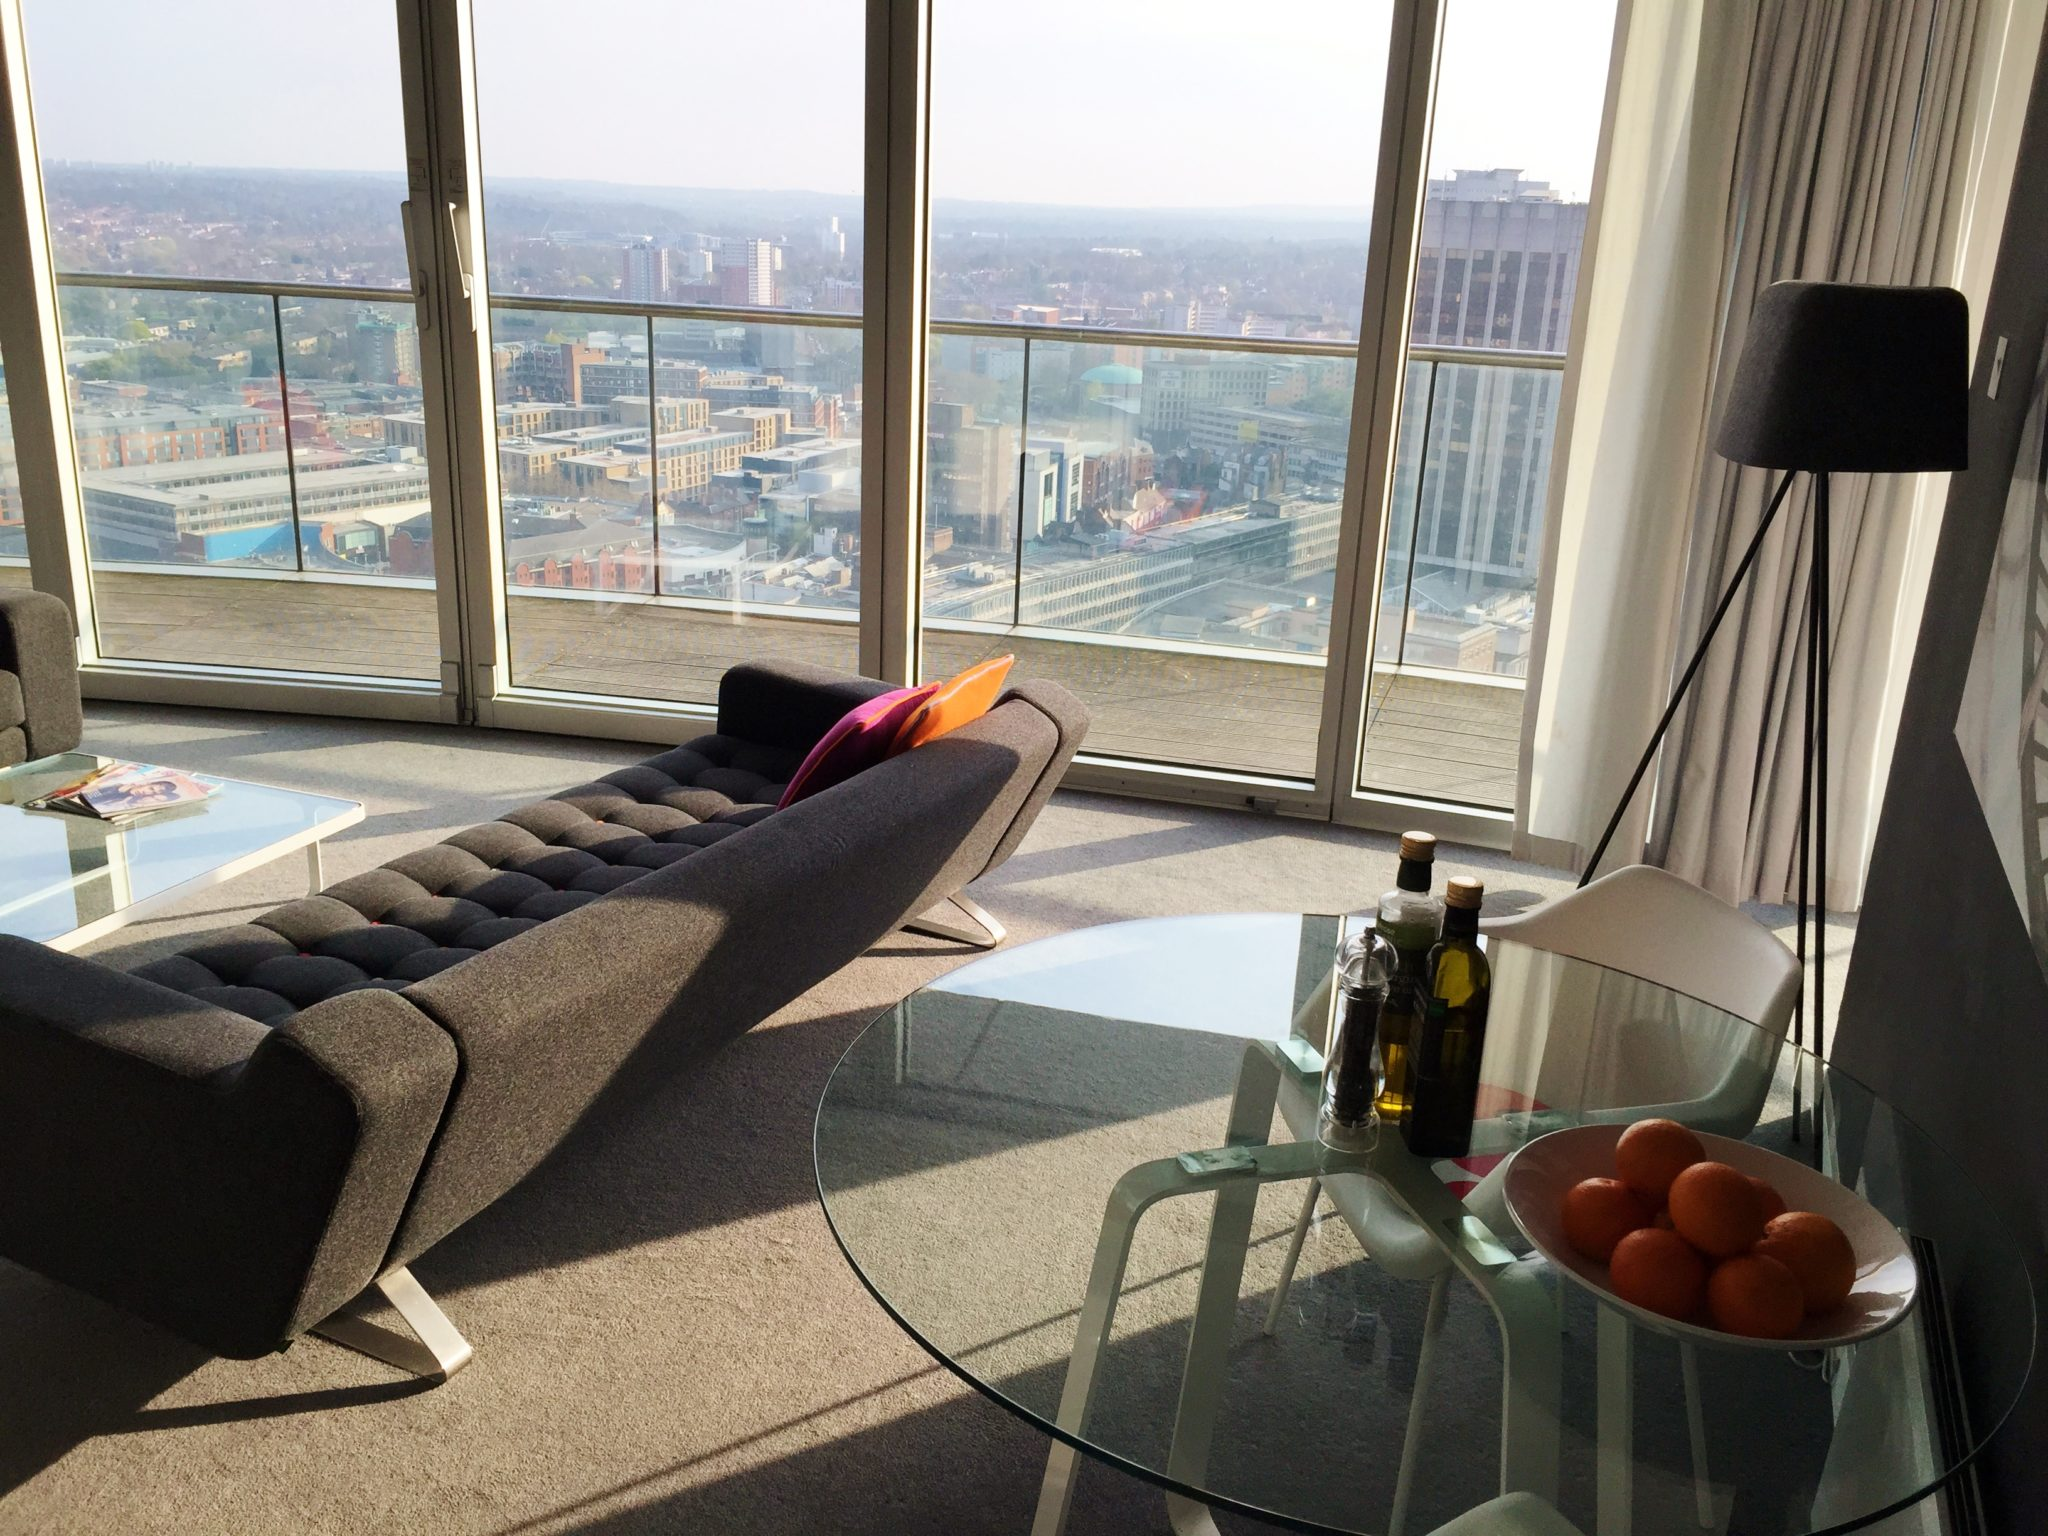 penthouse 2 bed staying cool rotunda birmingham 5 review celebrity